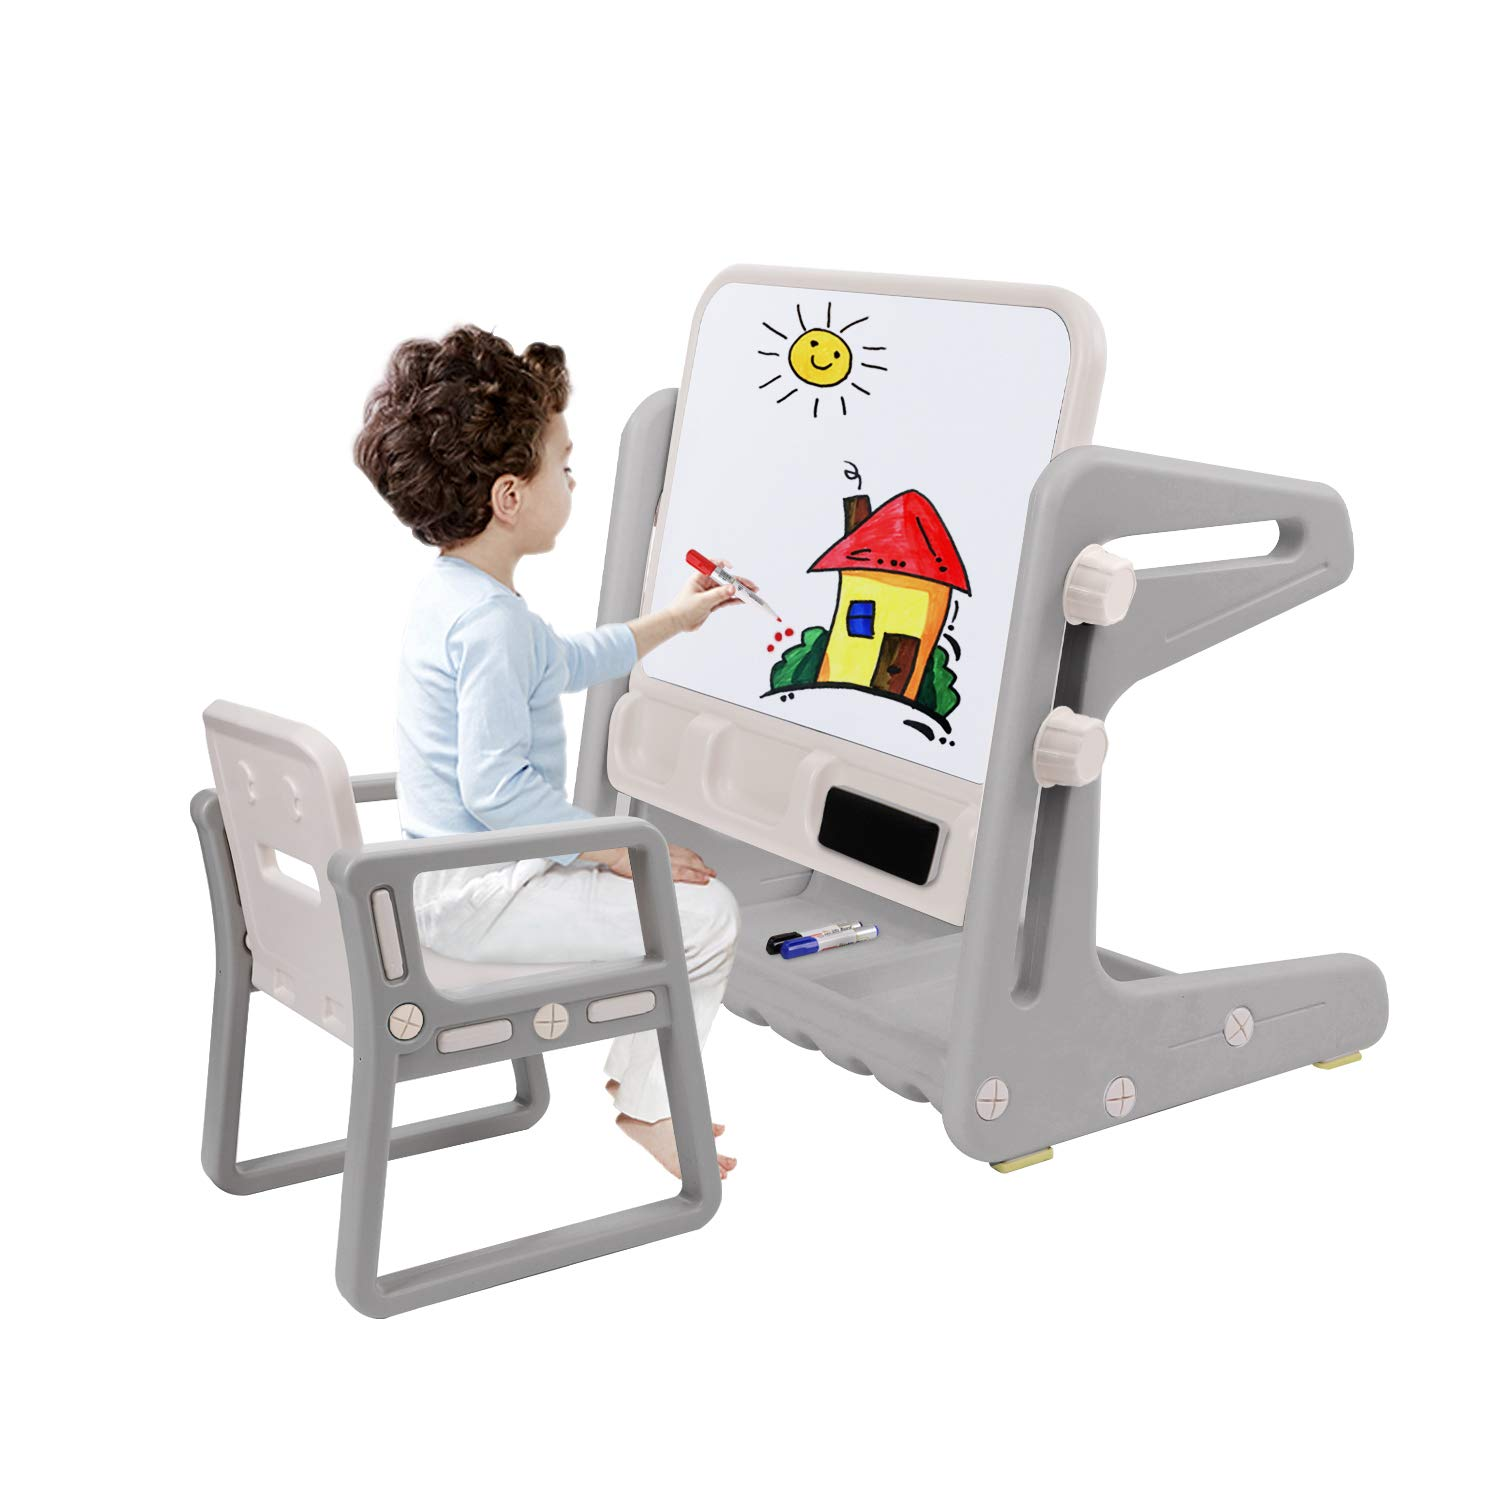 BAHOM Kids Art Easel with Chair, Painting Board for Toddlers with 3 Markers and 1 Eraser, Suitable for 1 to 5 Years Old